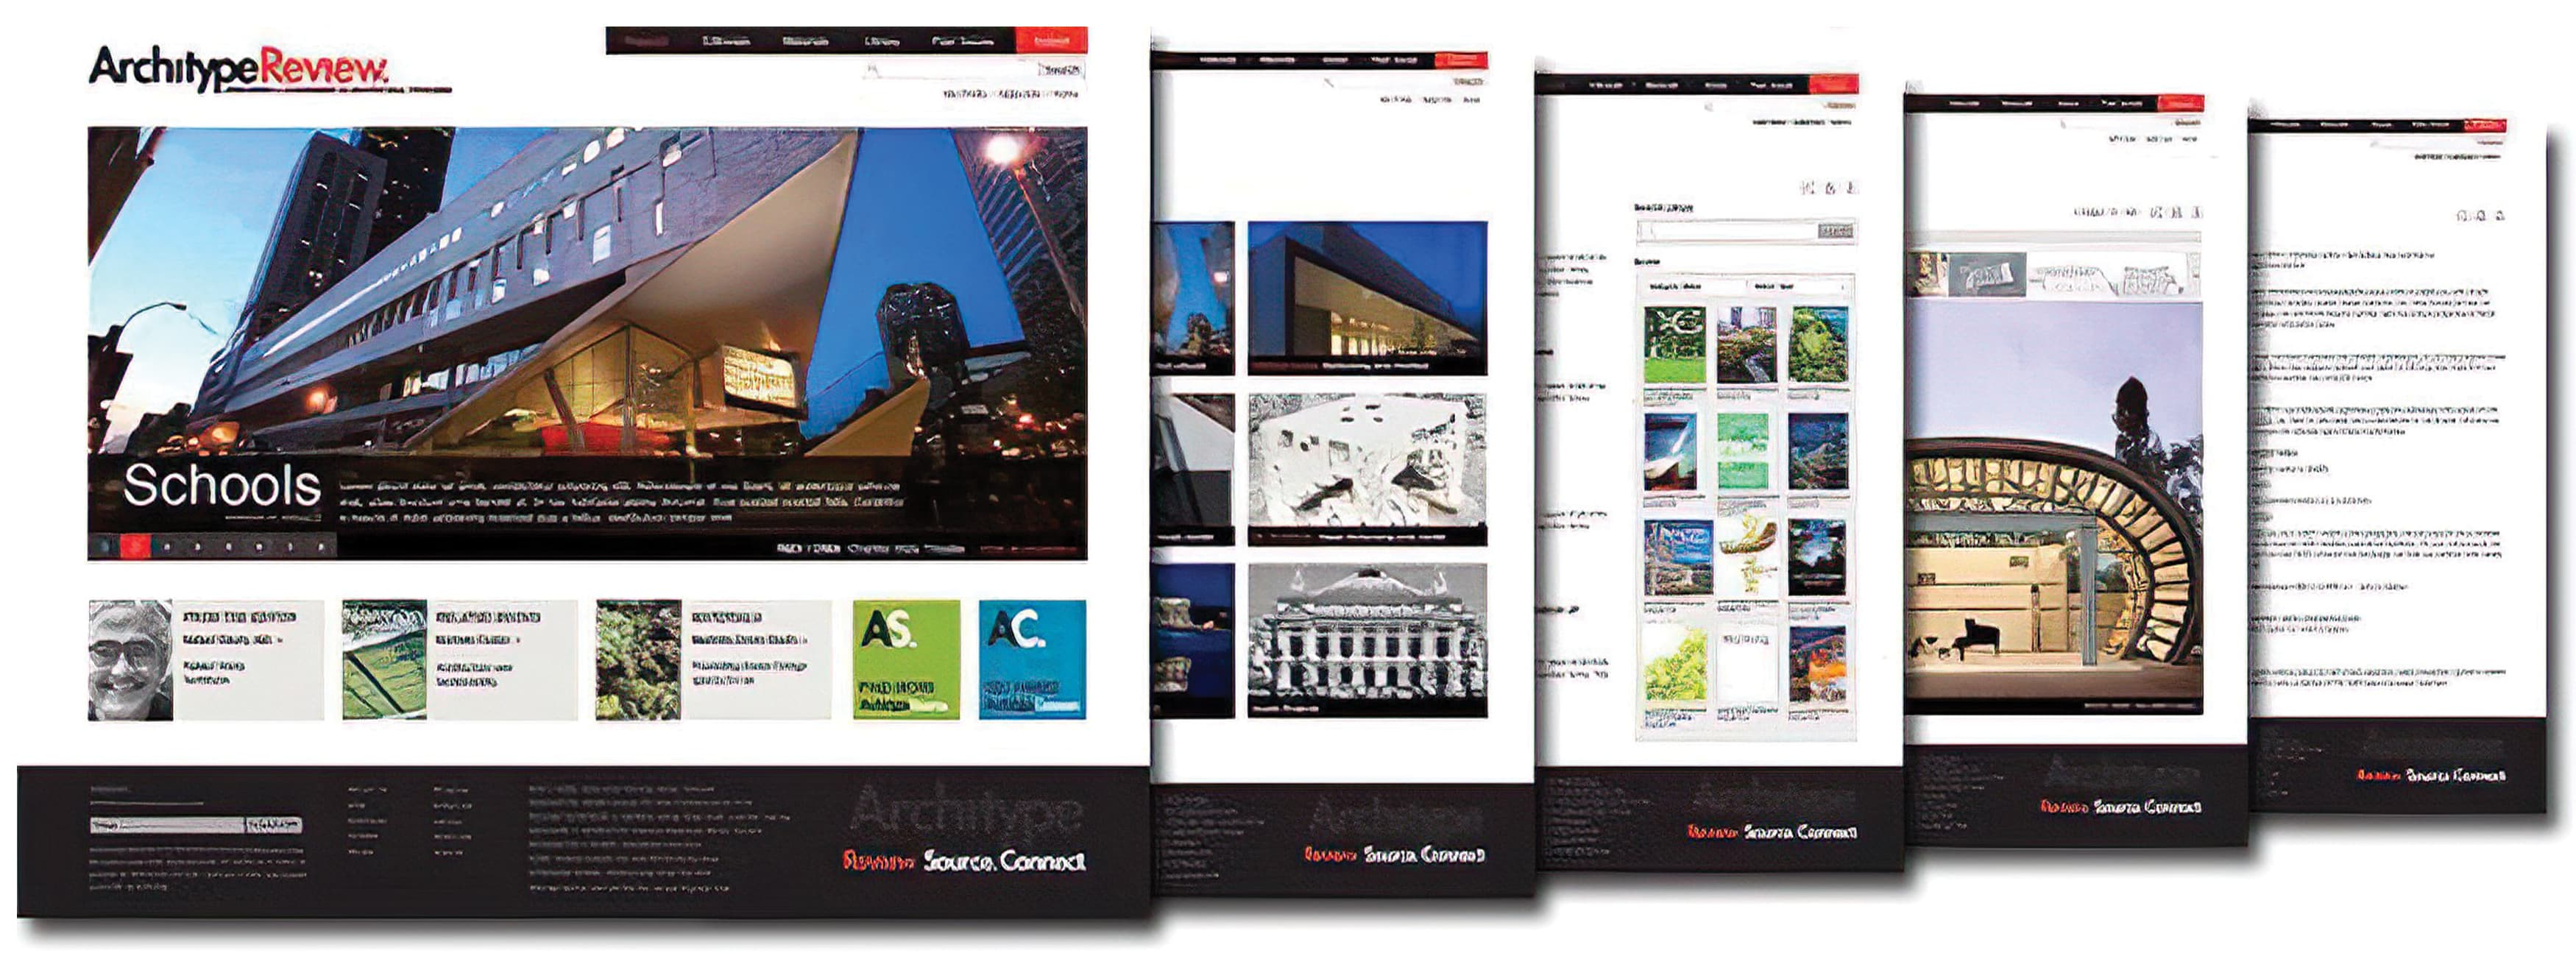 A series of windows from the new website designed for Architype Review.